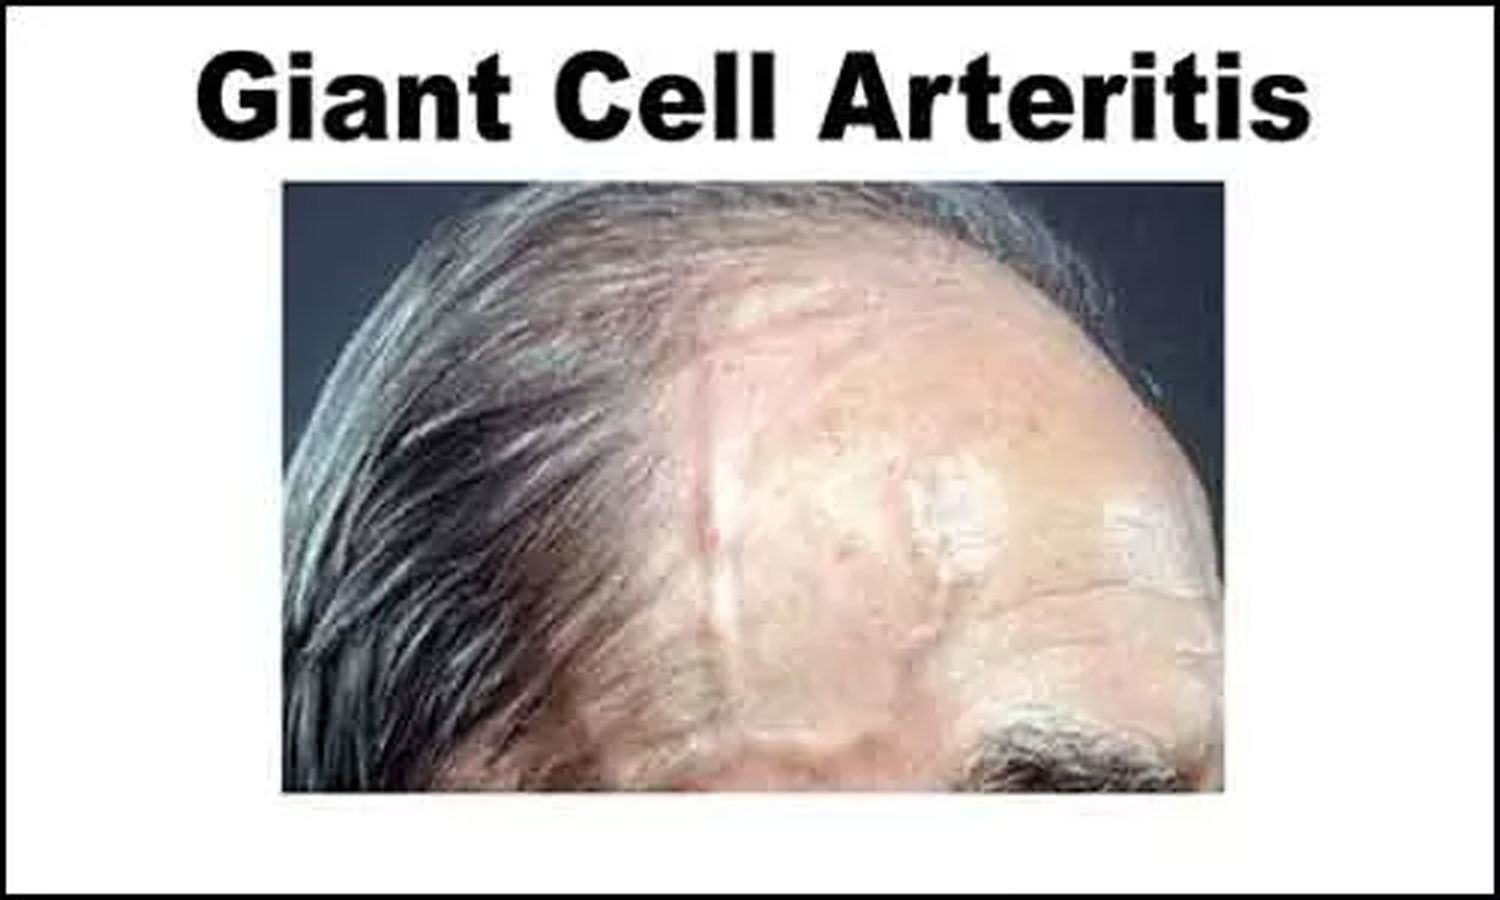 Diagnosis and treatment of giant cell arteritis: BSR guidelines